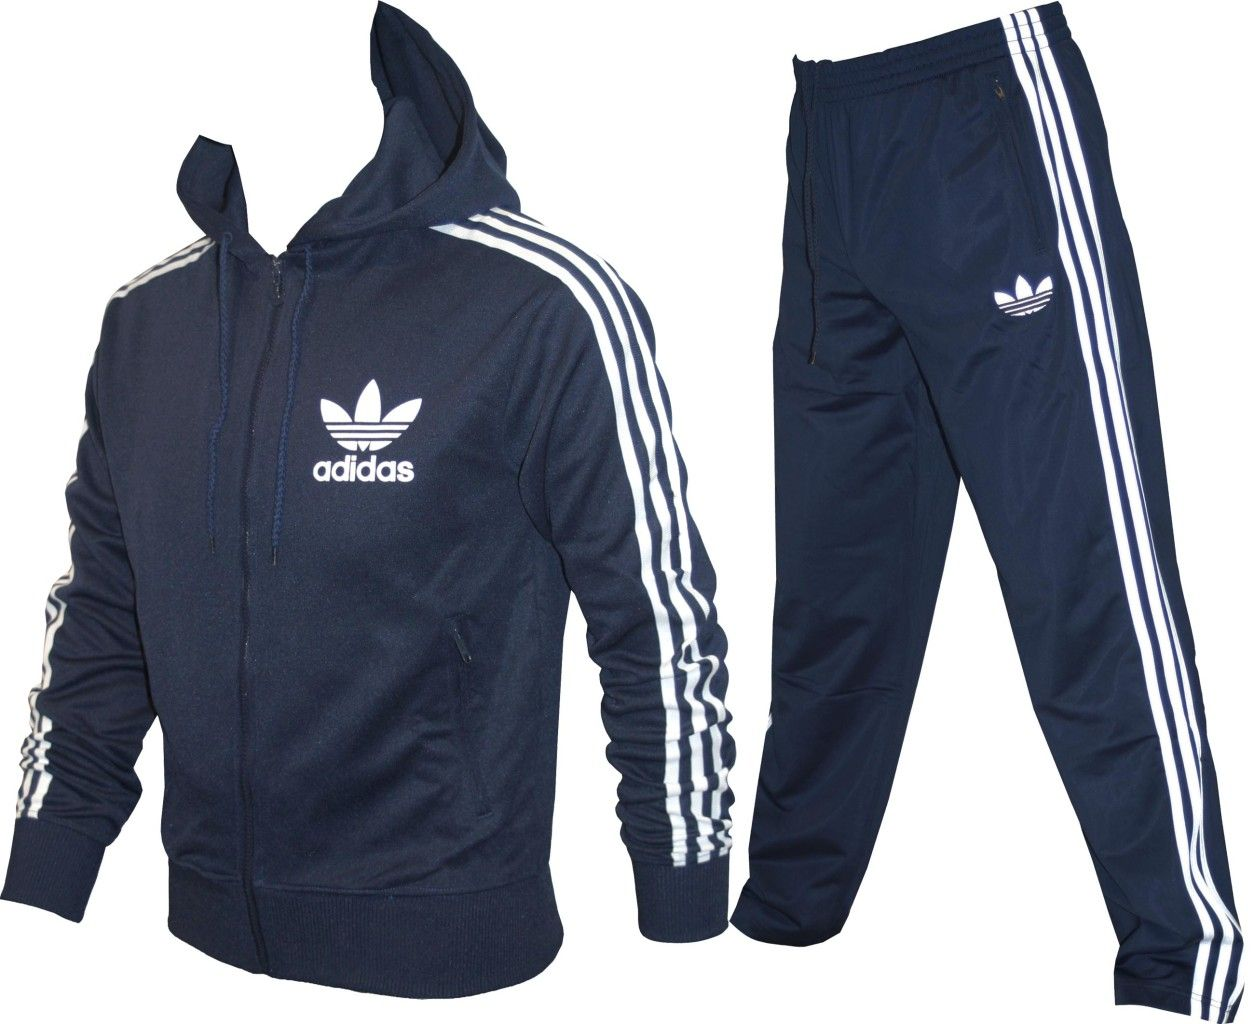 outlet store 5b3ff 99eba run dmc adidas tracksuit   MENS ADIDAS ORIGINALS 3 STRIPES TRACKSUIT NAVY S  M L XL   eBay